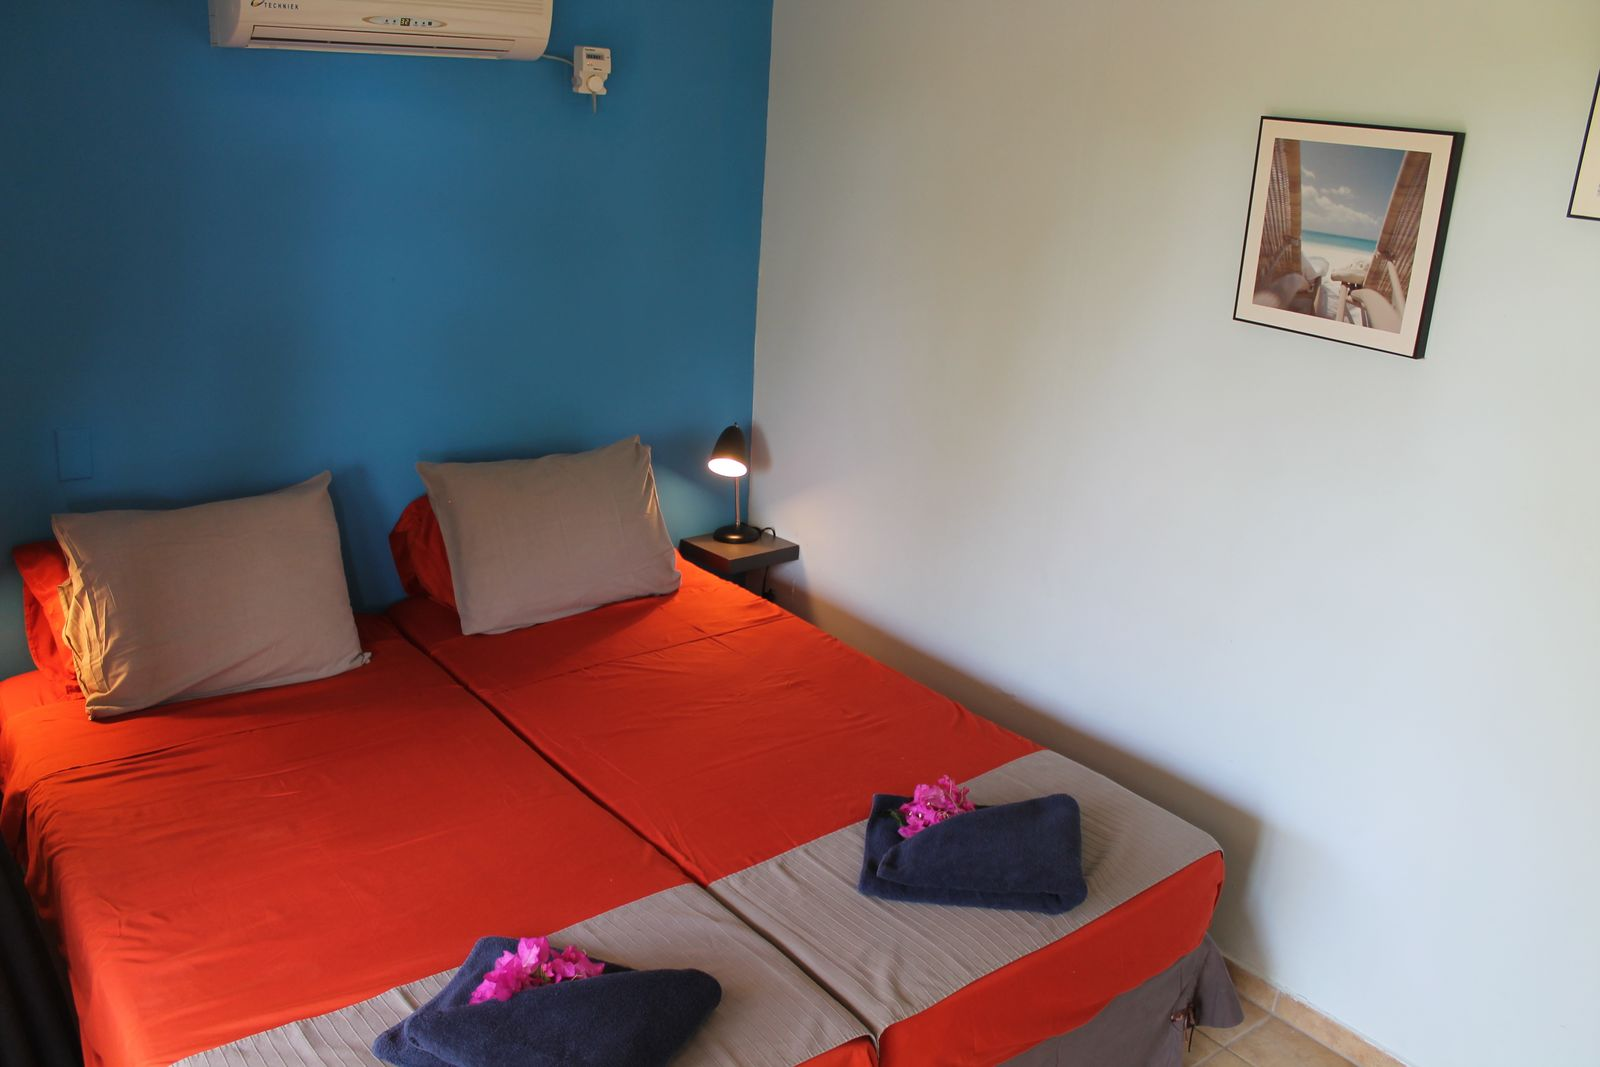 Image of 1 Bedroom Apartment - At Sea - First Floor